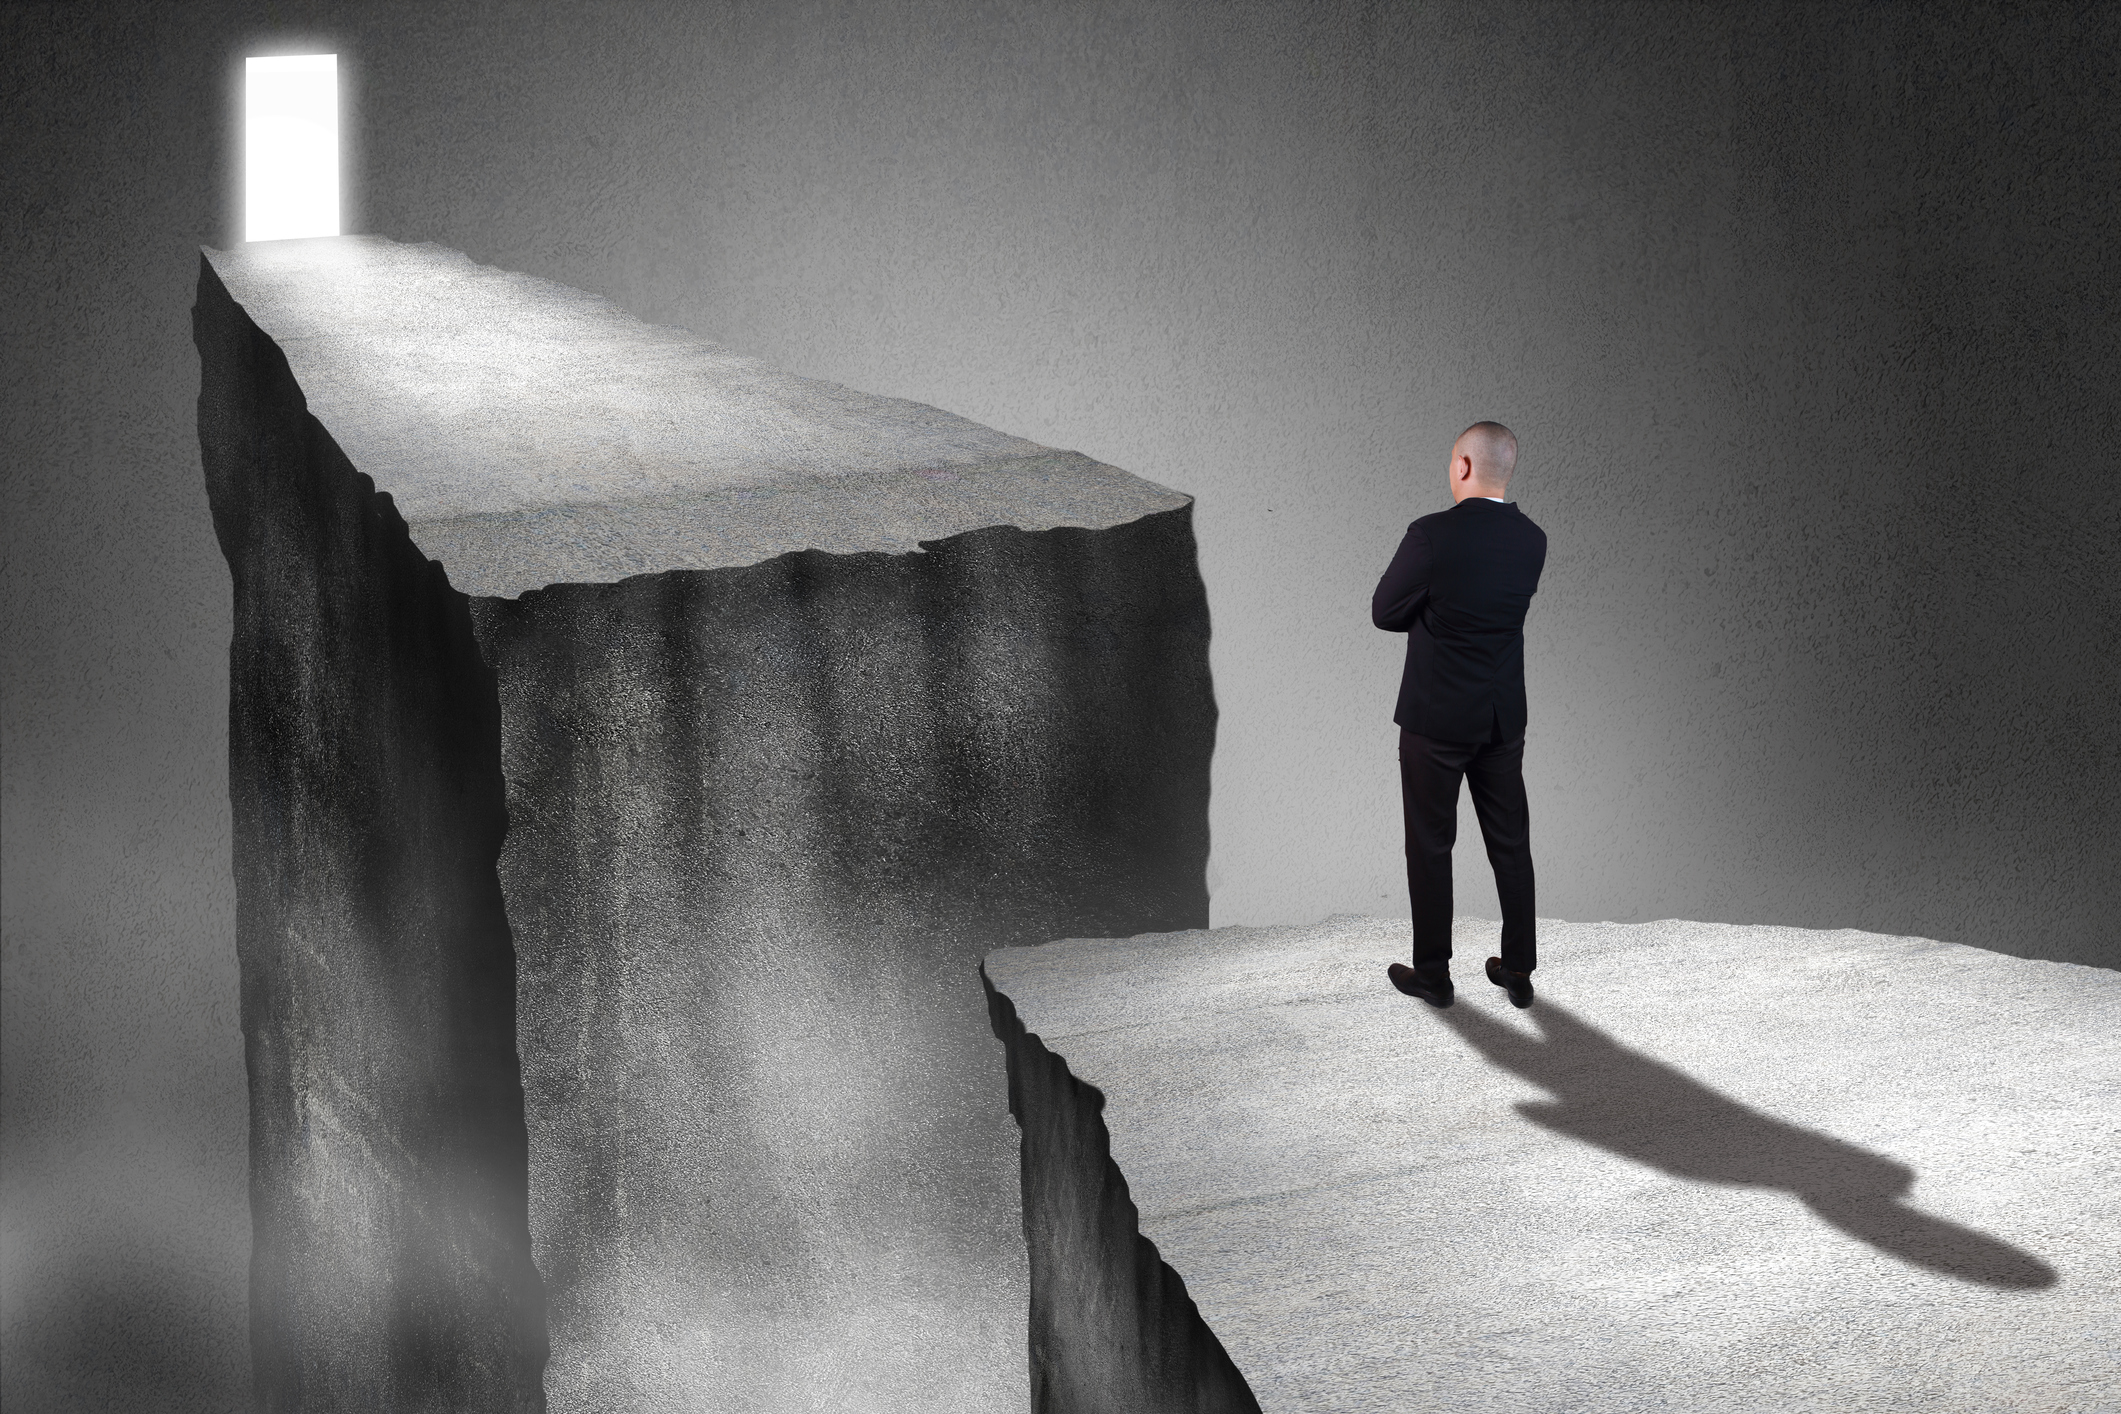 Man facing chasm